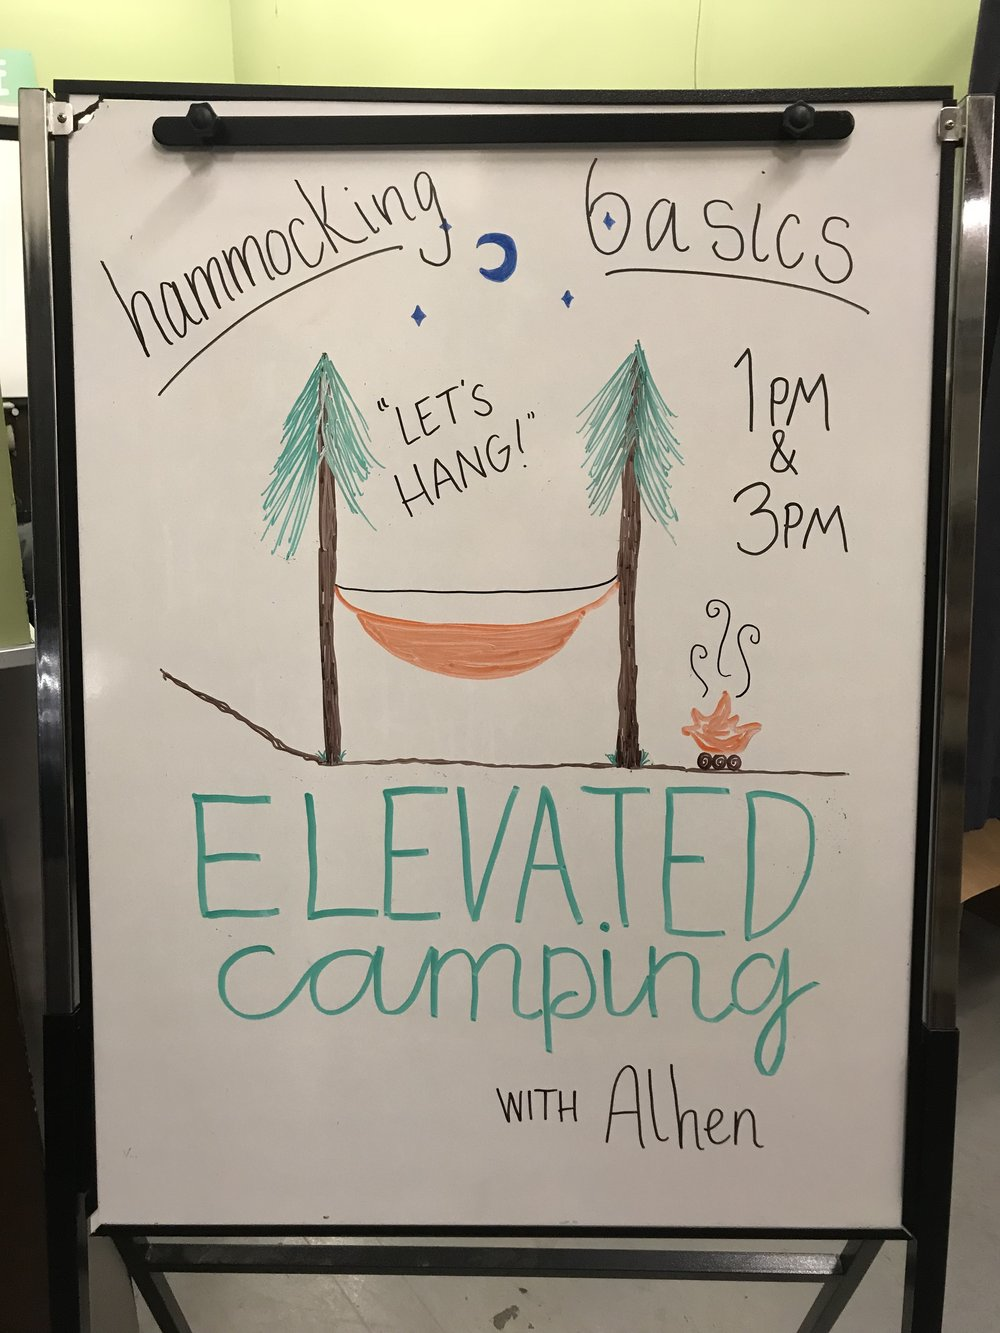 And he began teaching hammock camping workshops!